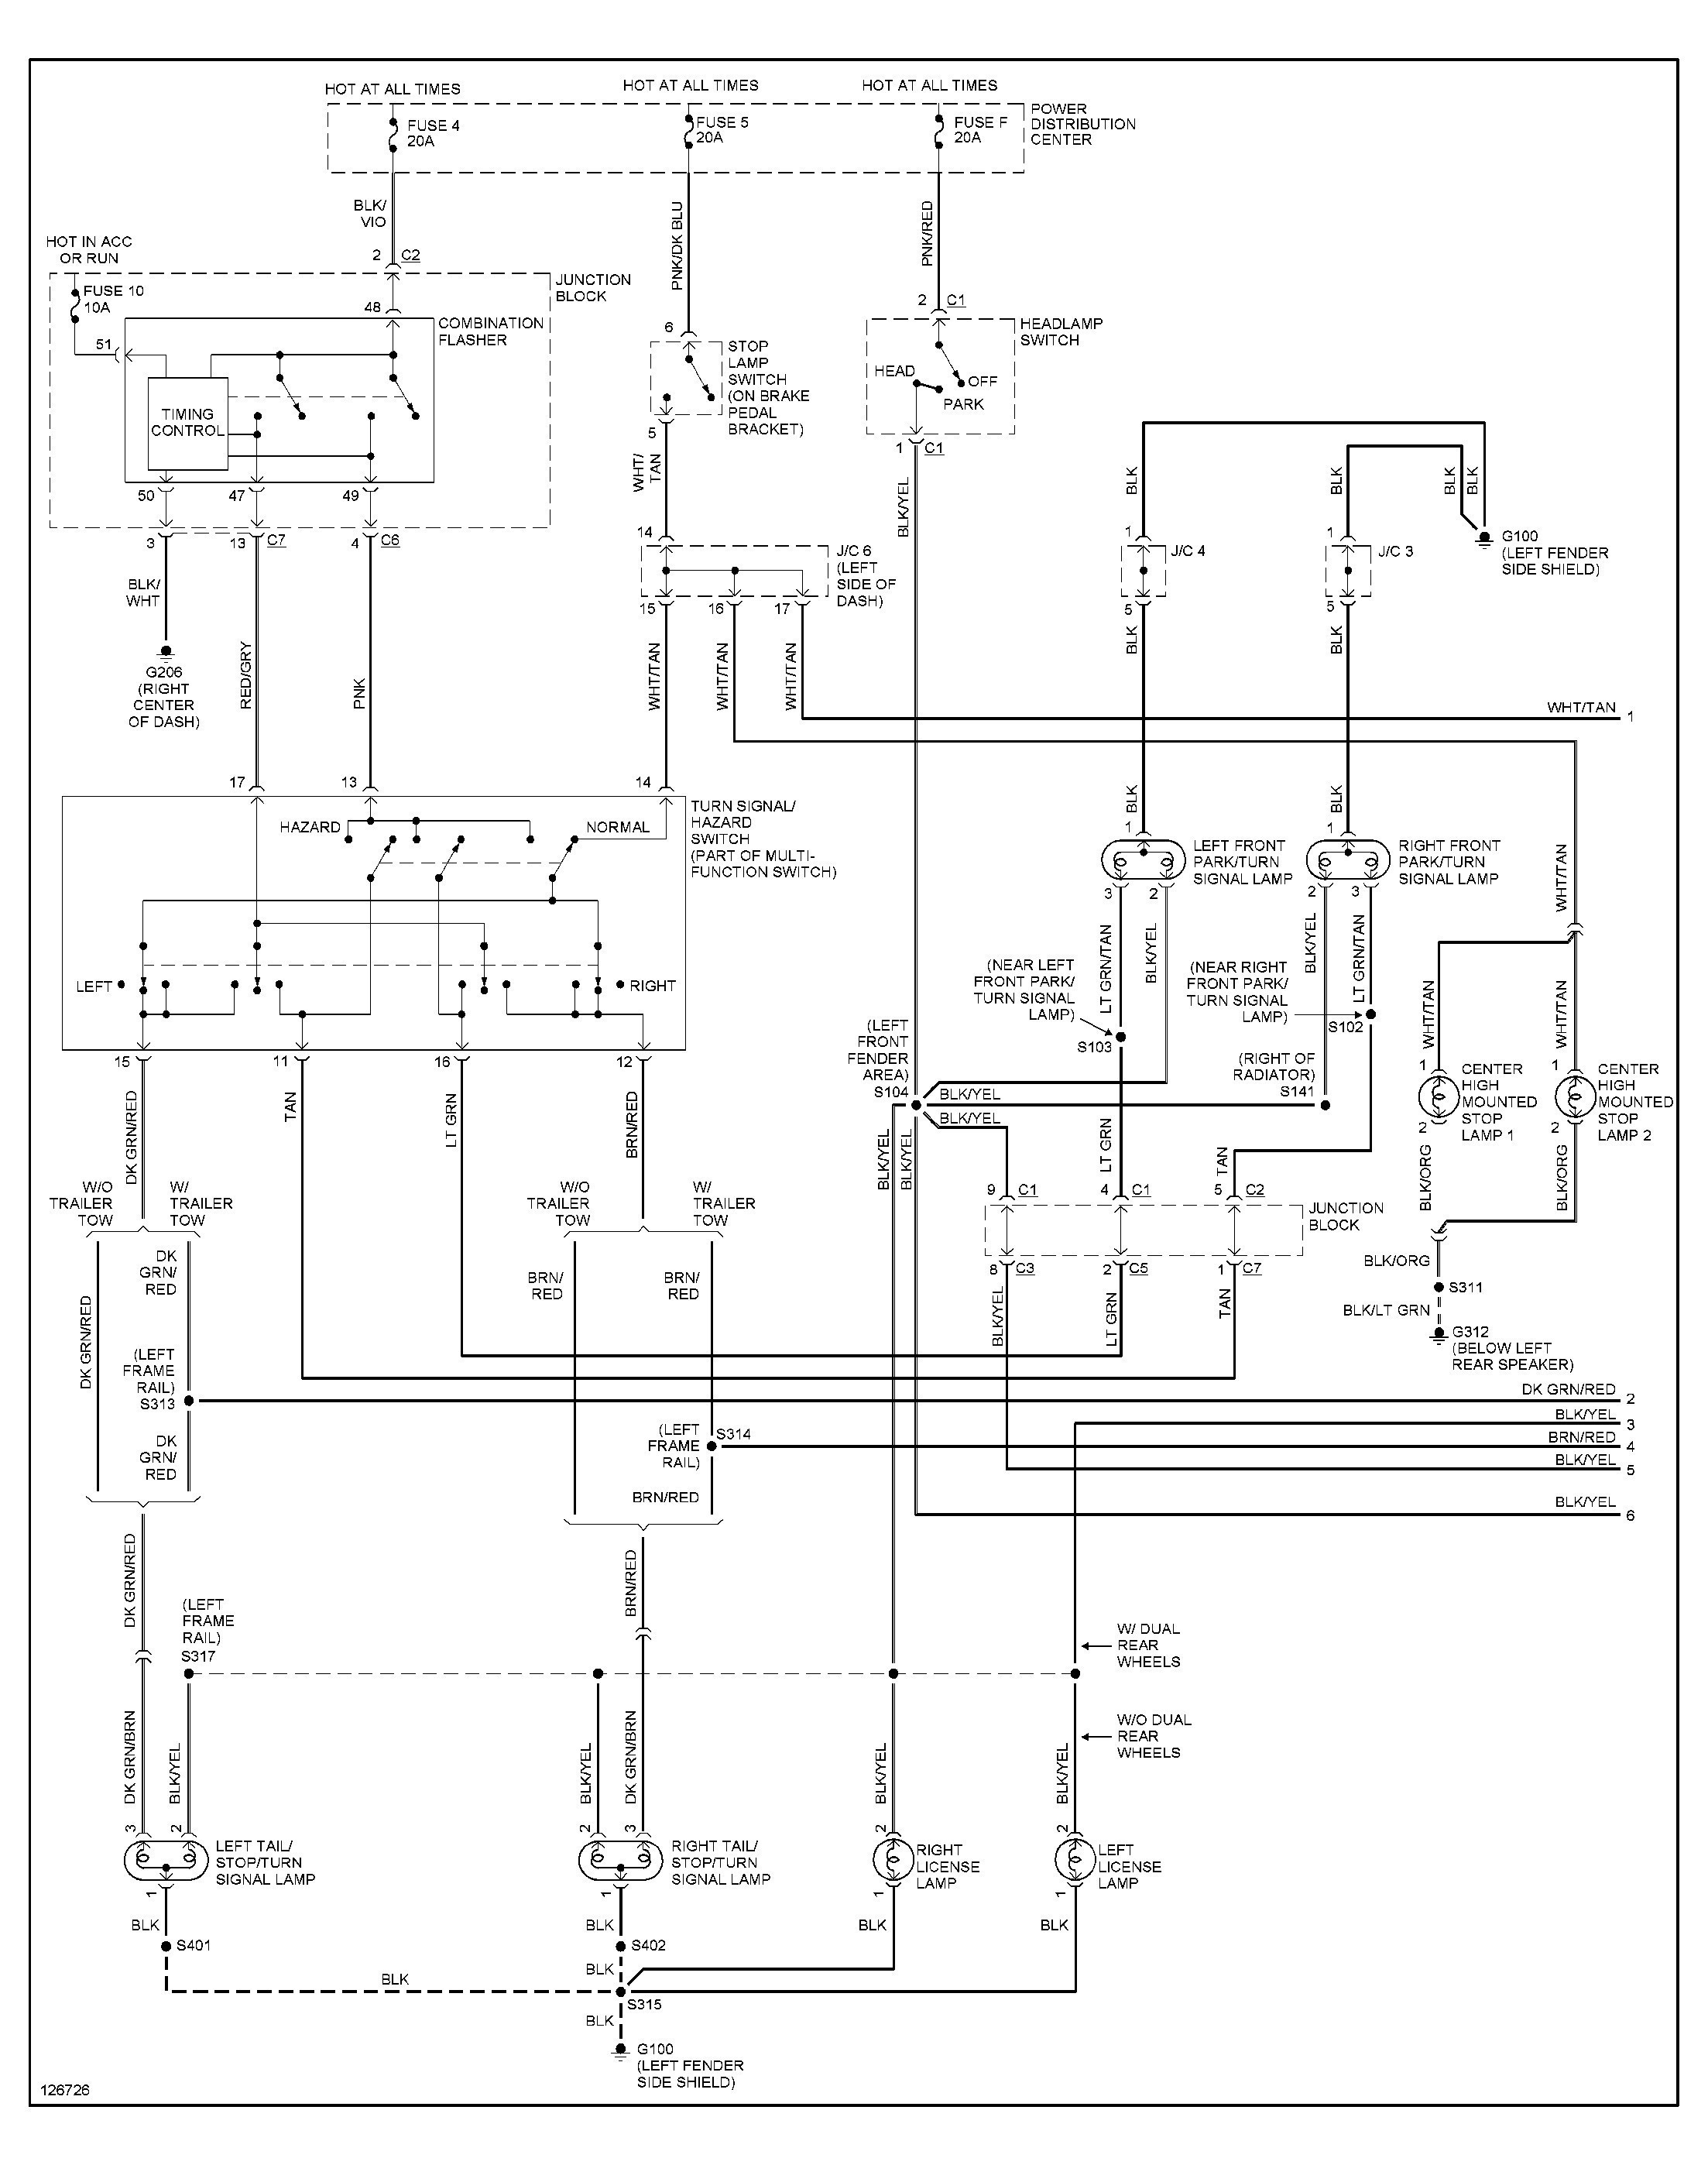 Get 2016 Dodge Ram Trailer Wiring Diagram Download